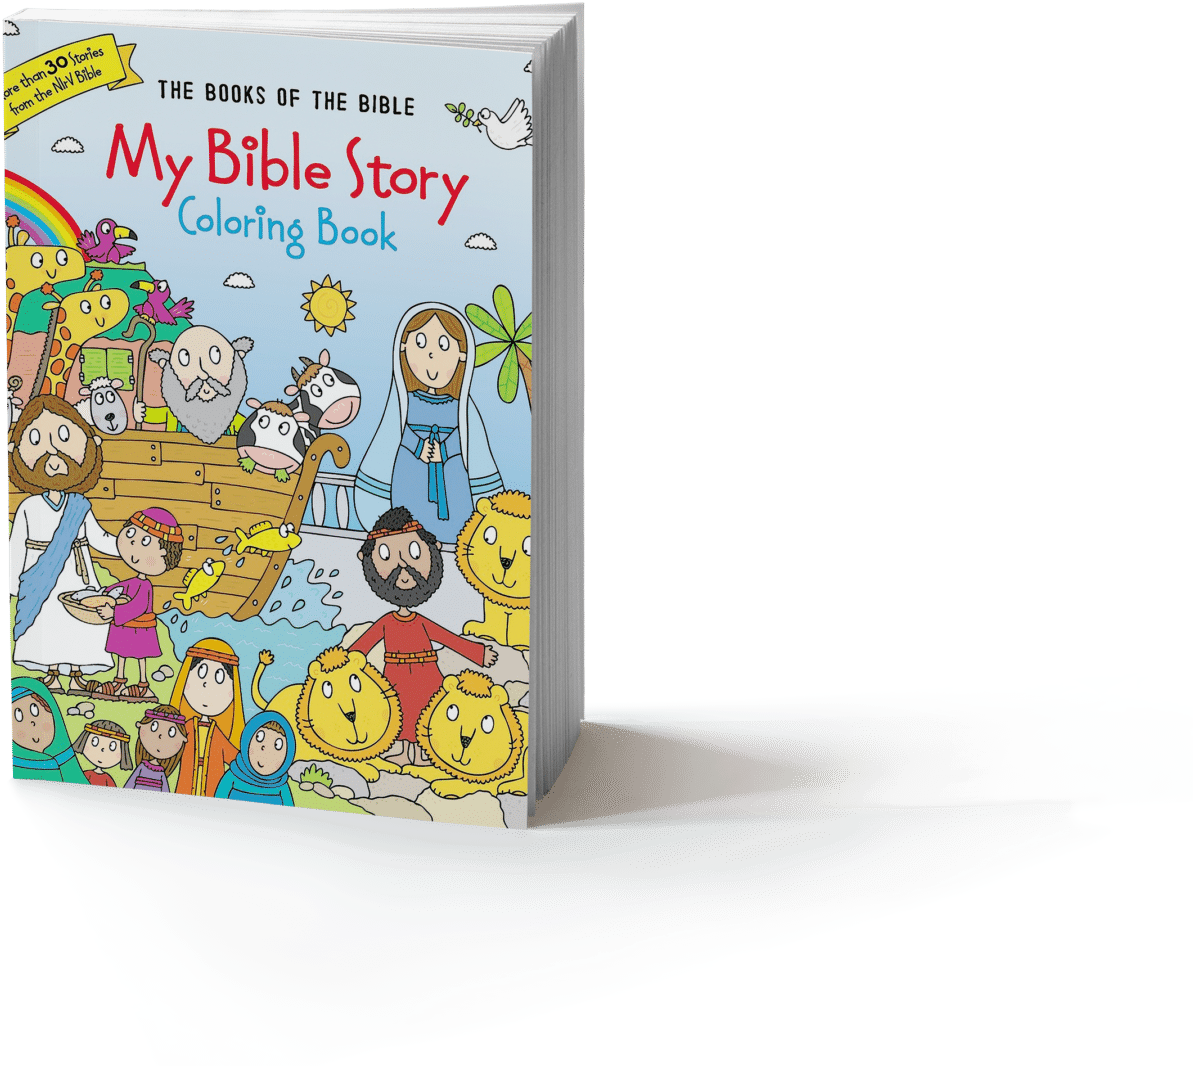 - Download Book-mockup - My Bible Story Coloring Book: The Books PNG